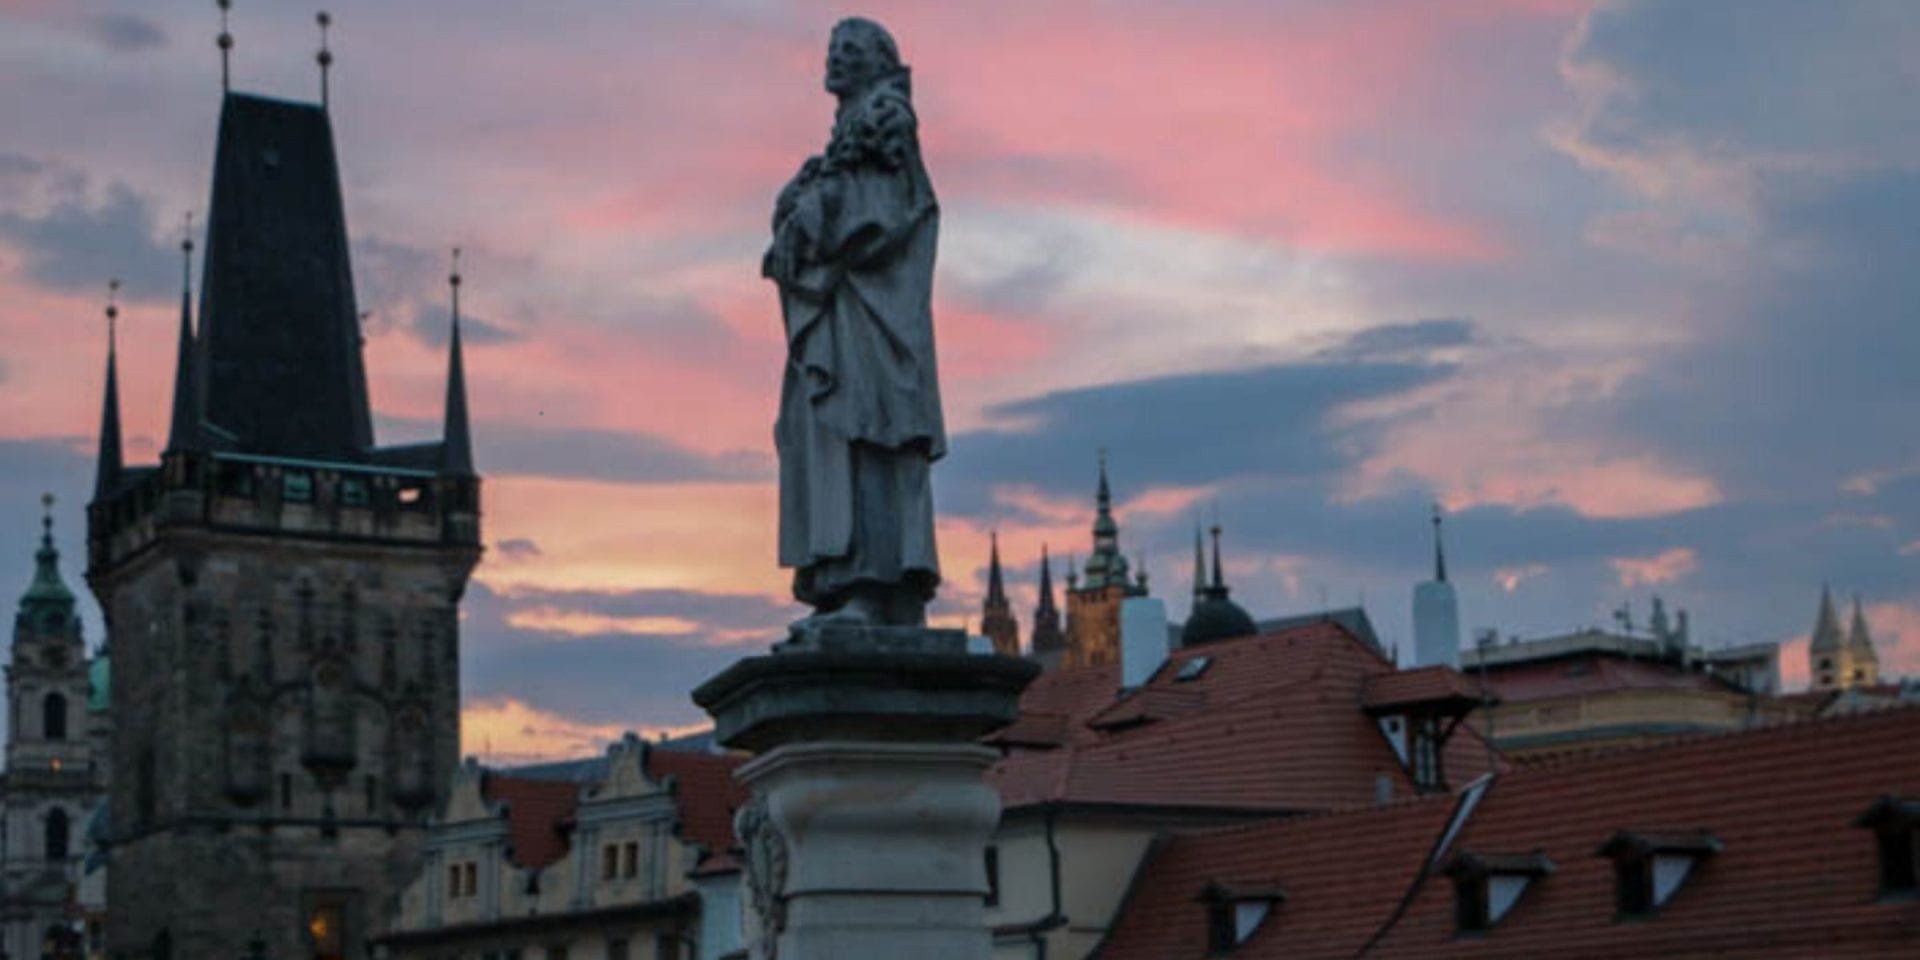 charles bridge on a walking tour of prague